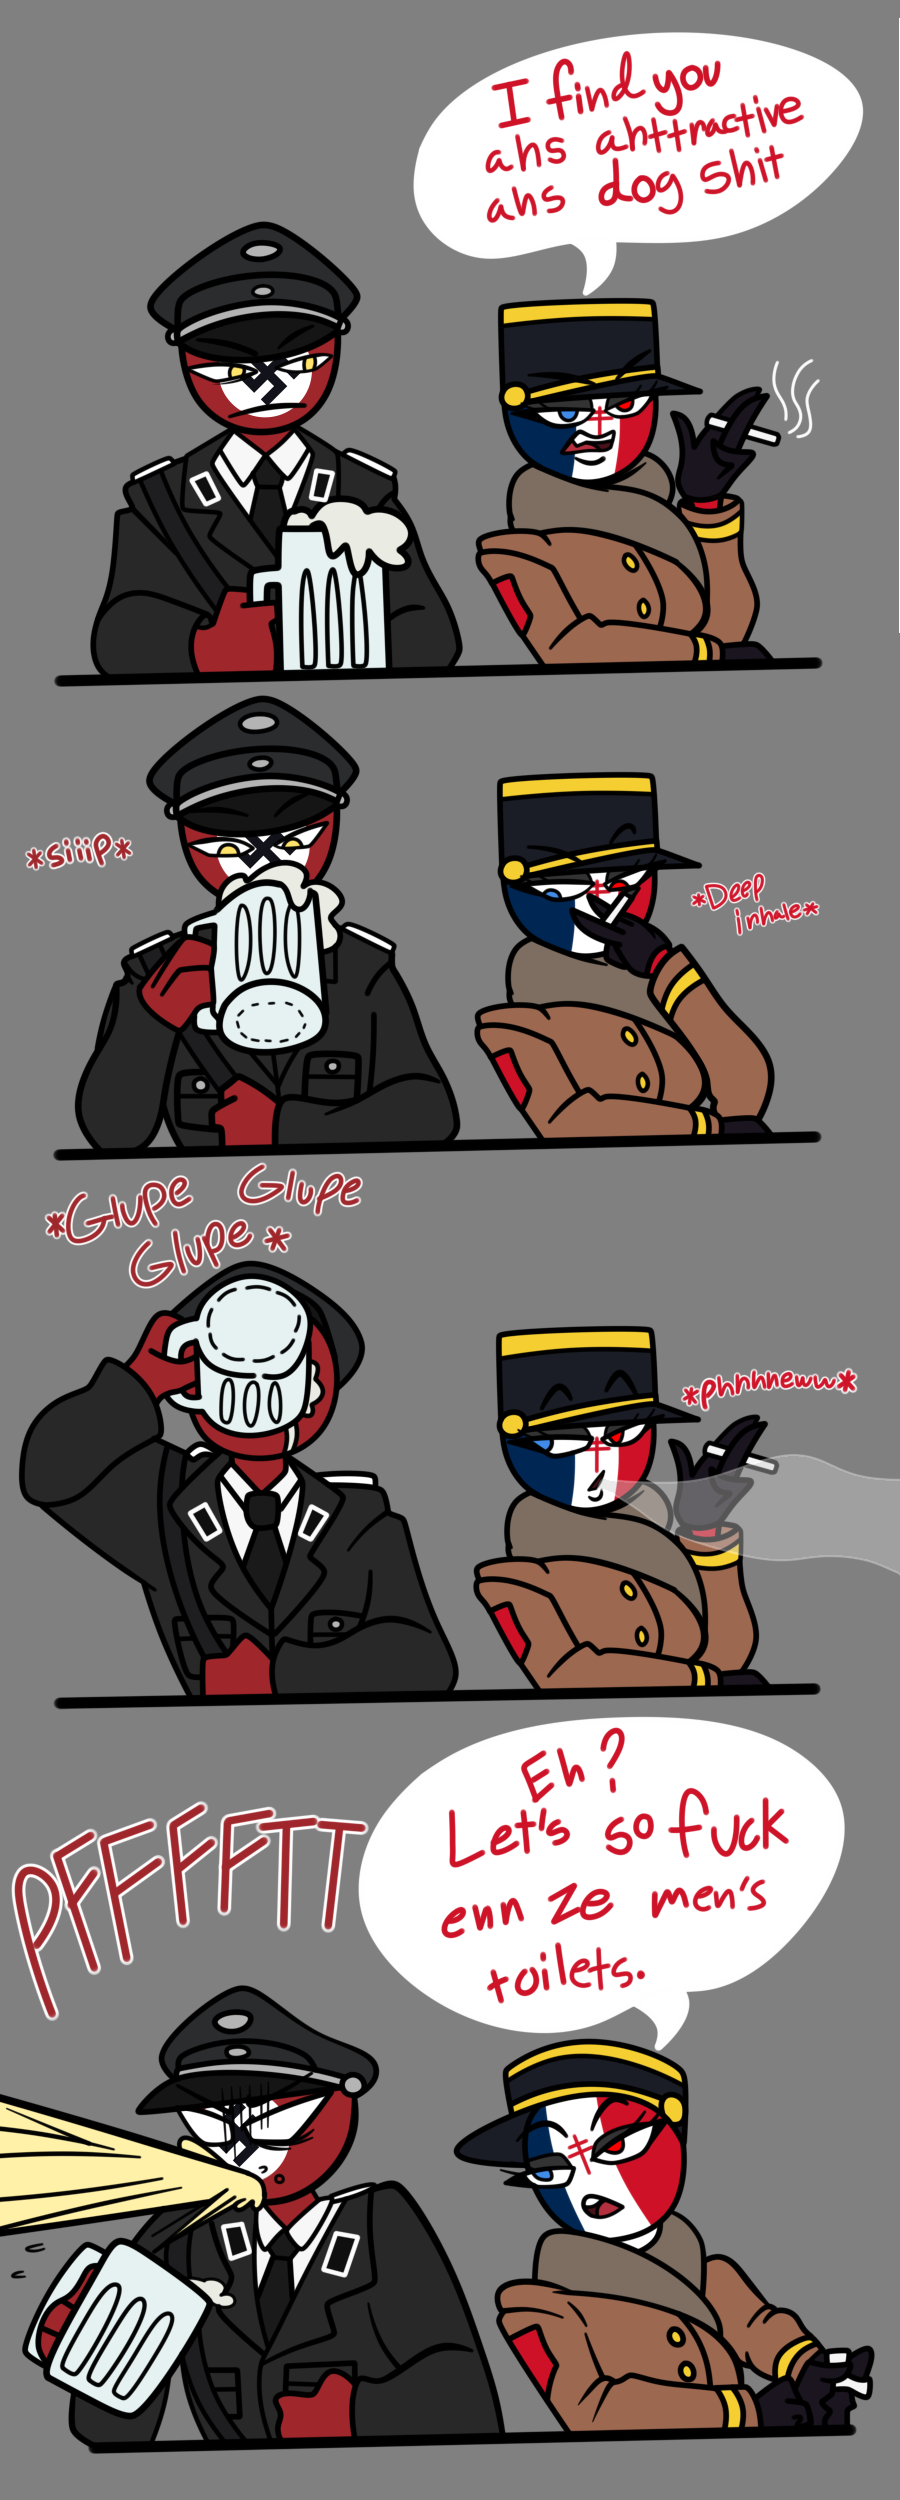 CountryHumans - Third Reich and France